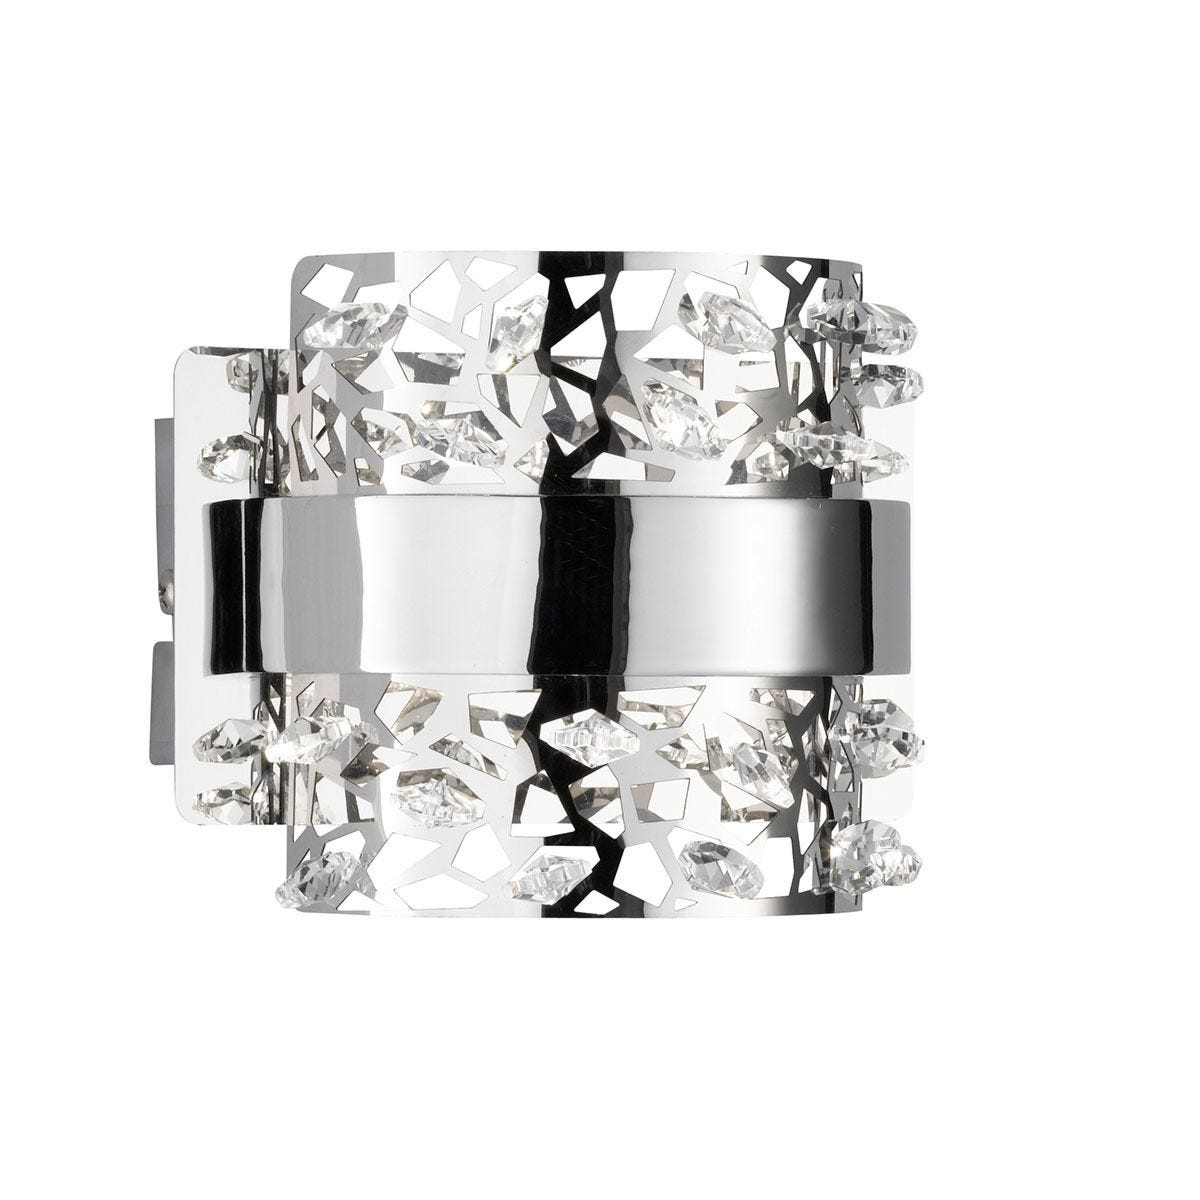 Wofi Kris Wall Lamp - Chrome